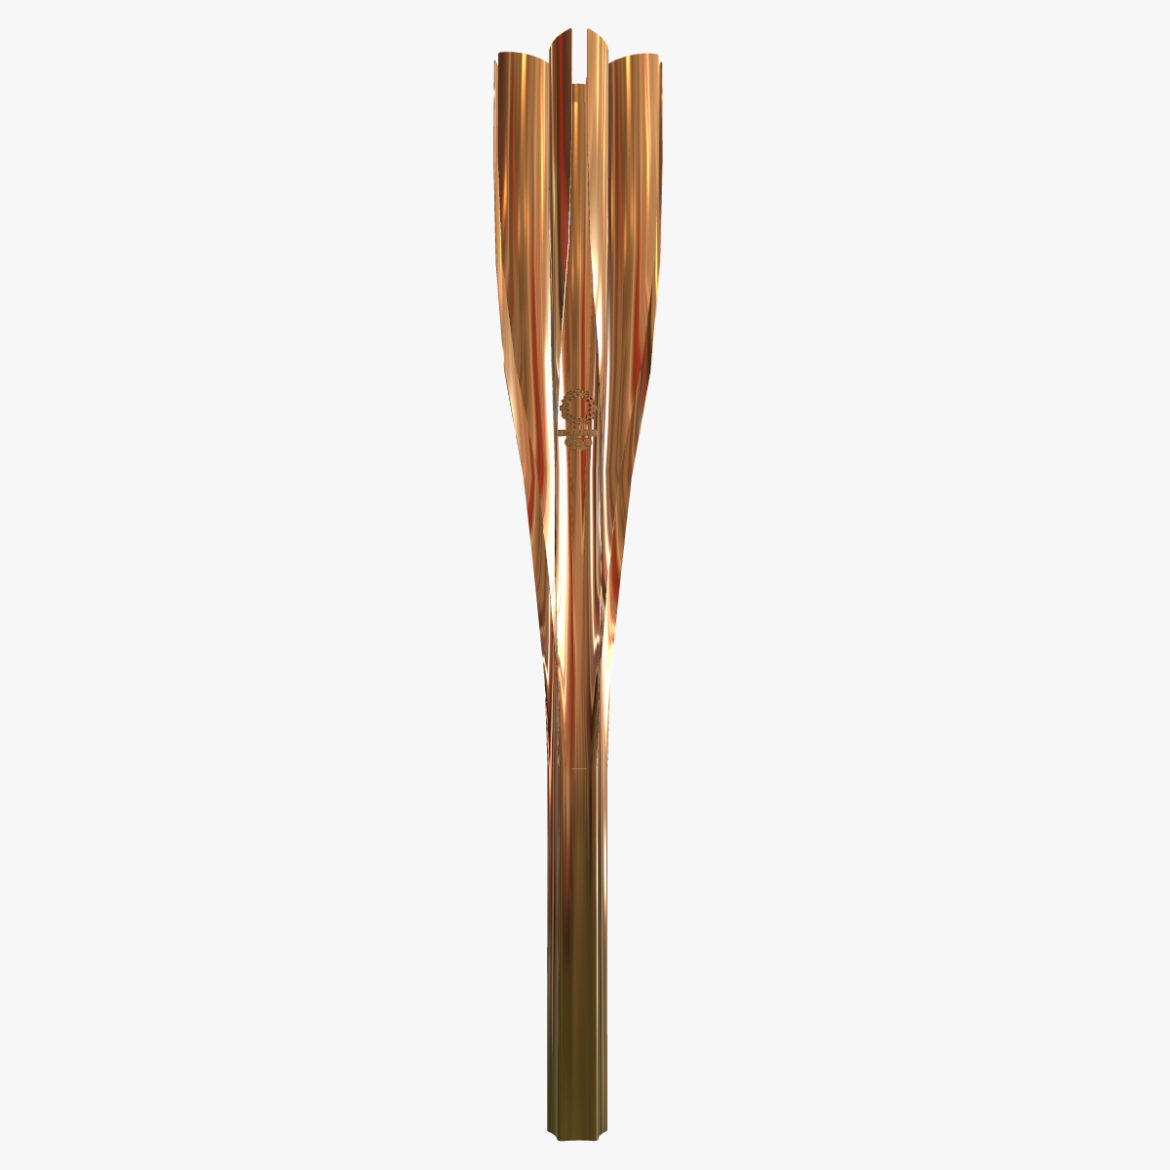 tokyo 2020 olympic torch 3d model ther obj max fbx 3ds 304242